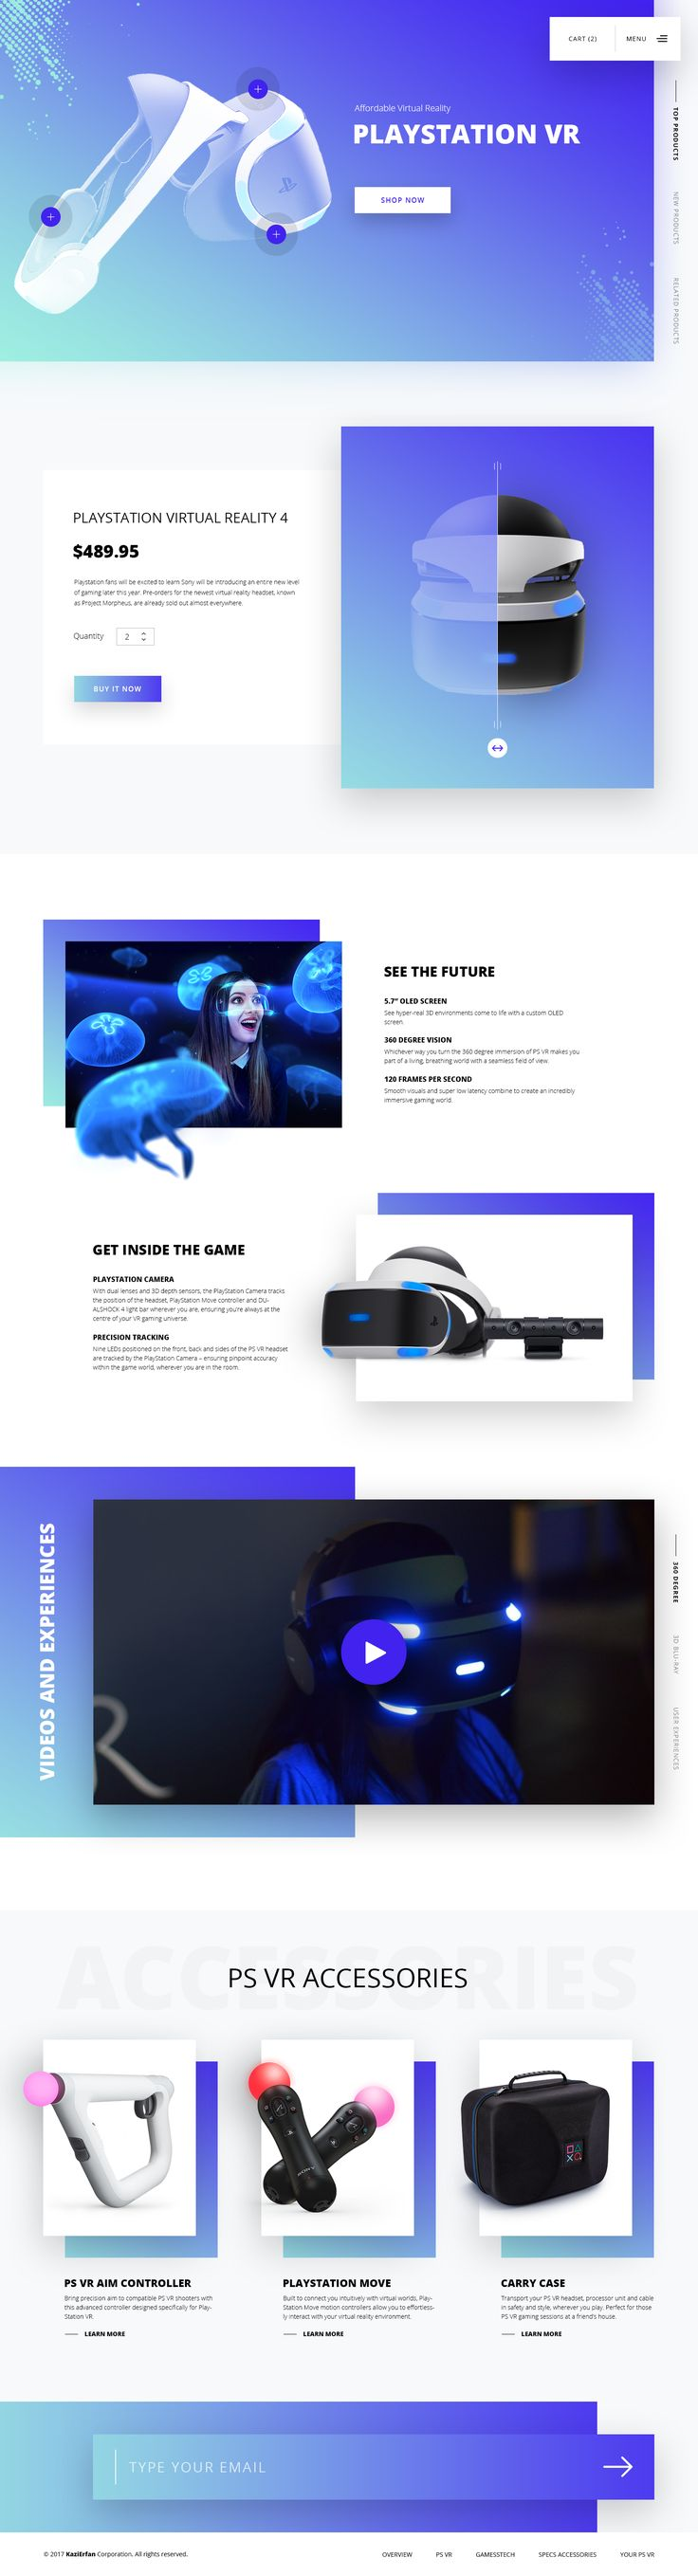 Nowadays I'm researching on Virtual Reality a lot. Here's a glimpse of PlayStation VR website concept.... %desc